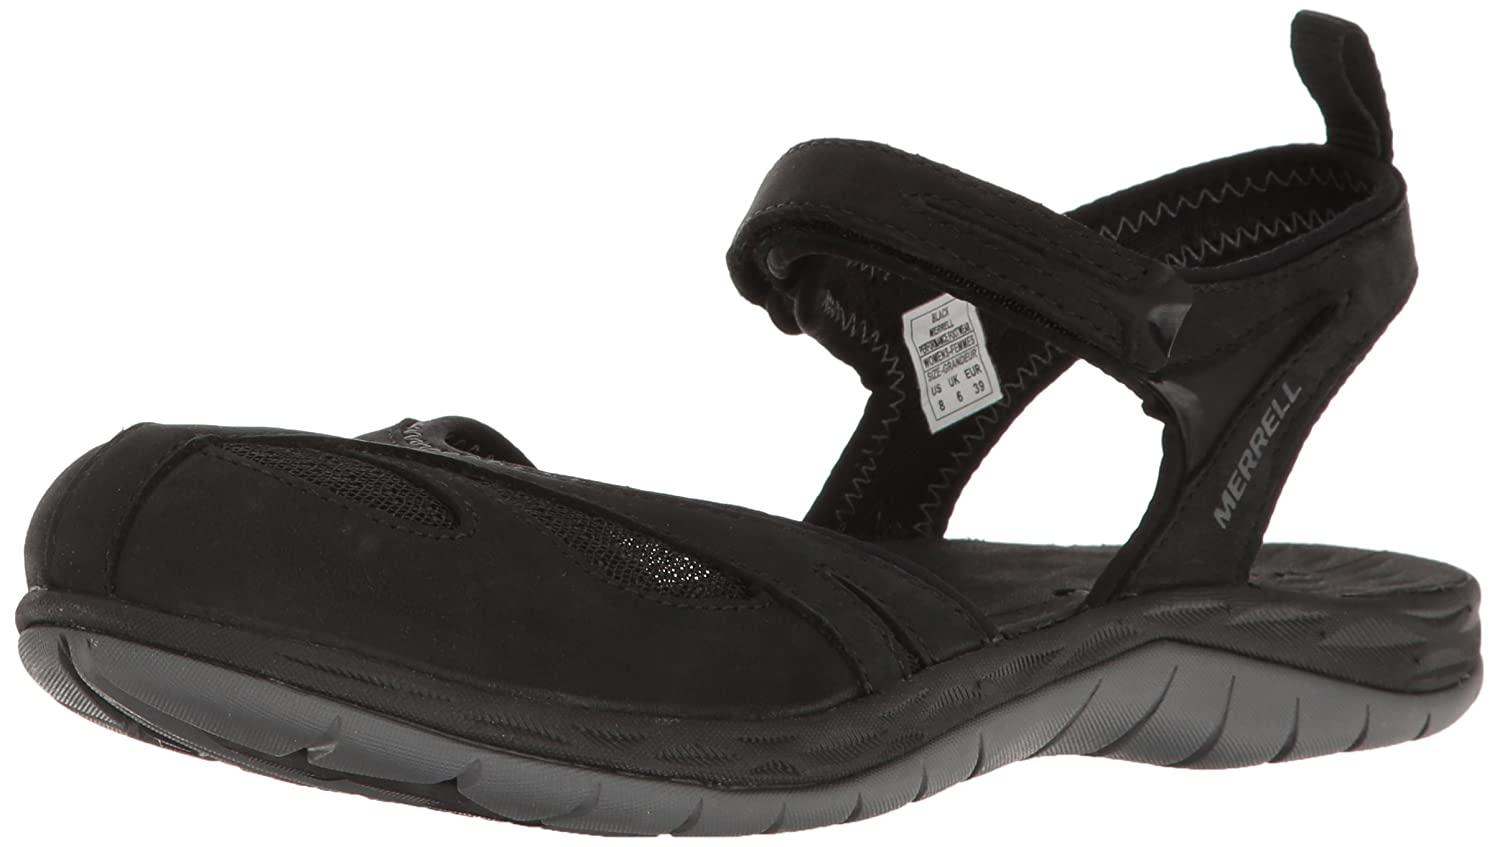 Merrell Women's Siren Wrap Q2 Athletic Sandal B01HGW6FTO 6 B(M) US|Black